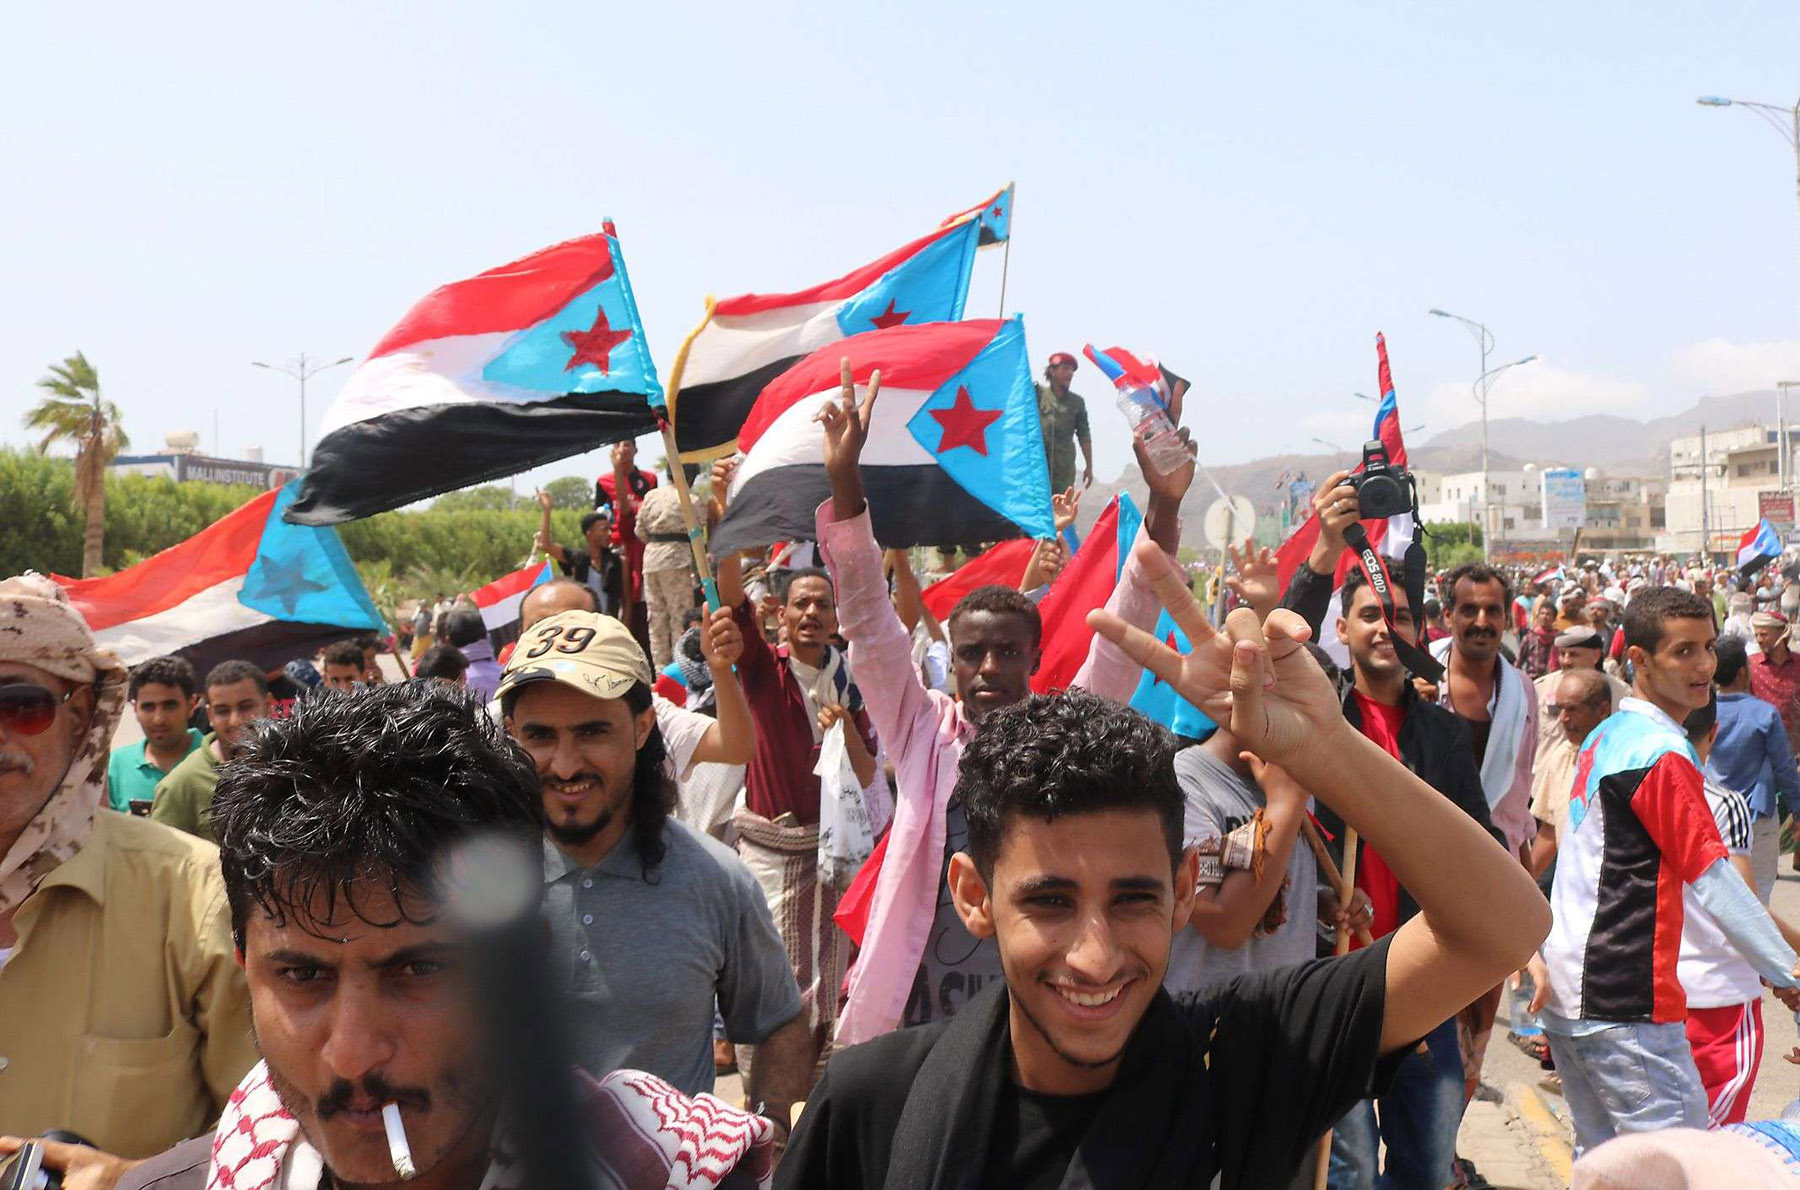 Yemeni demonstrators wave flags of former South Yemen as they march in Yemen's second city of Aden, August 15. (AFP)